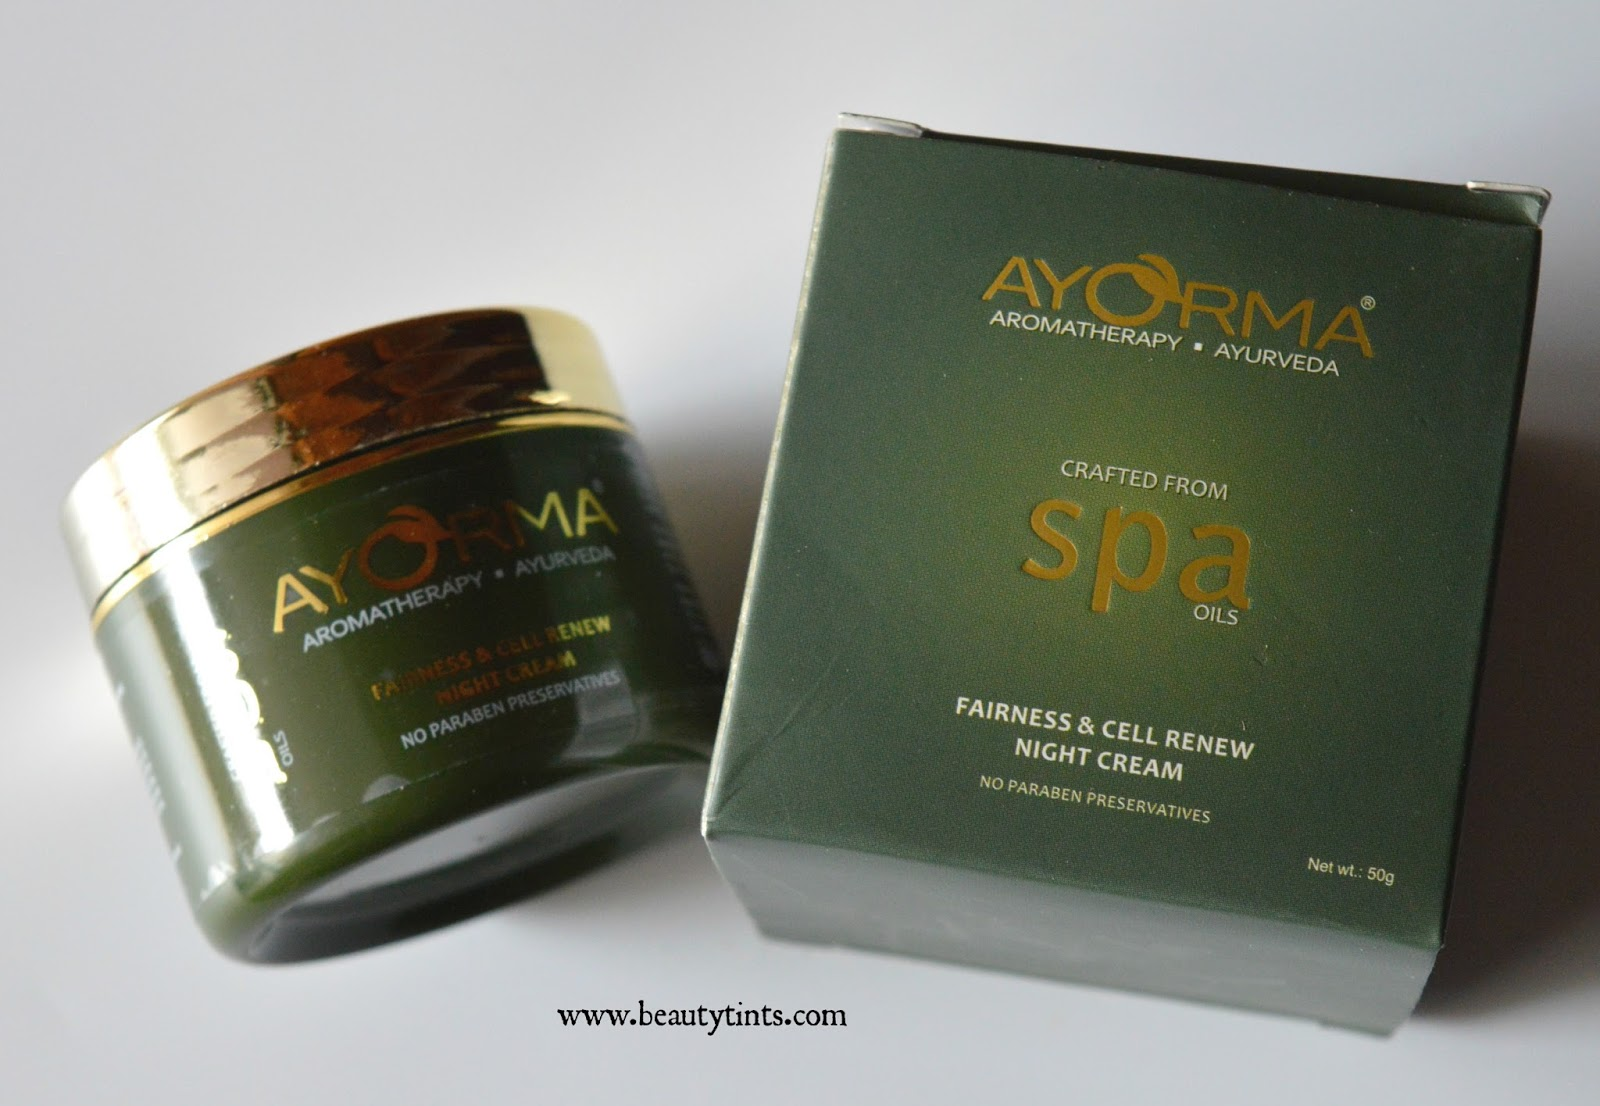 Sriz beauty blog ayorma fairness cell renew night cream for Renew home designs reviews